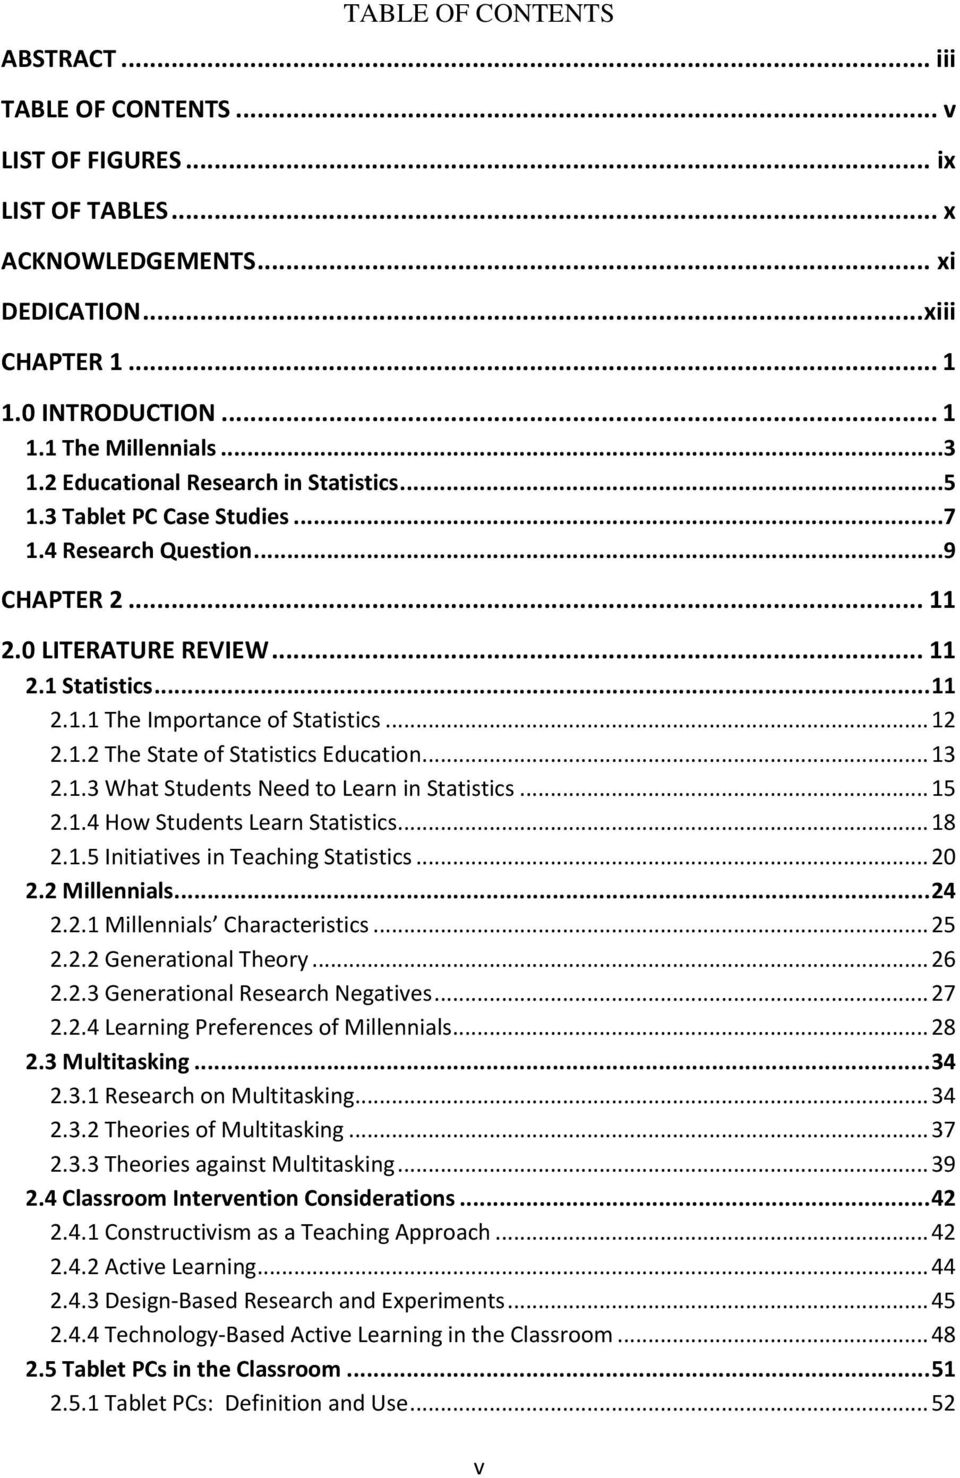 .. 12 2.1.2 The State of Statistics Education... 13 2.1.3 What Students Need to Learn in Statistics... 15 2.1.4 How Students Learn Statistics... 18 2.1.5 Initiatives in Teaching Statistics... 20 2.